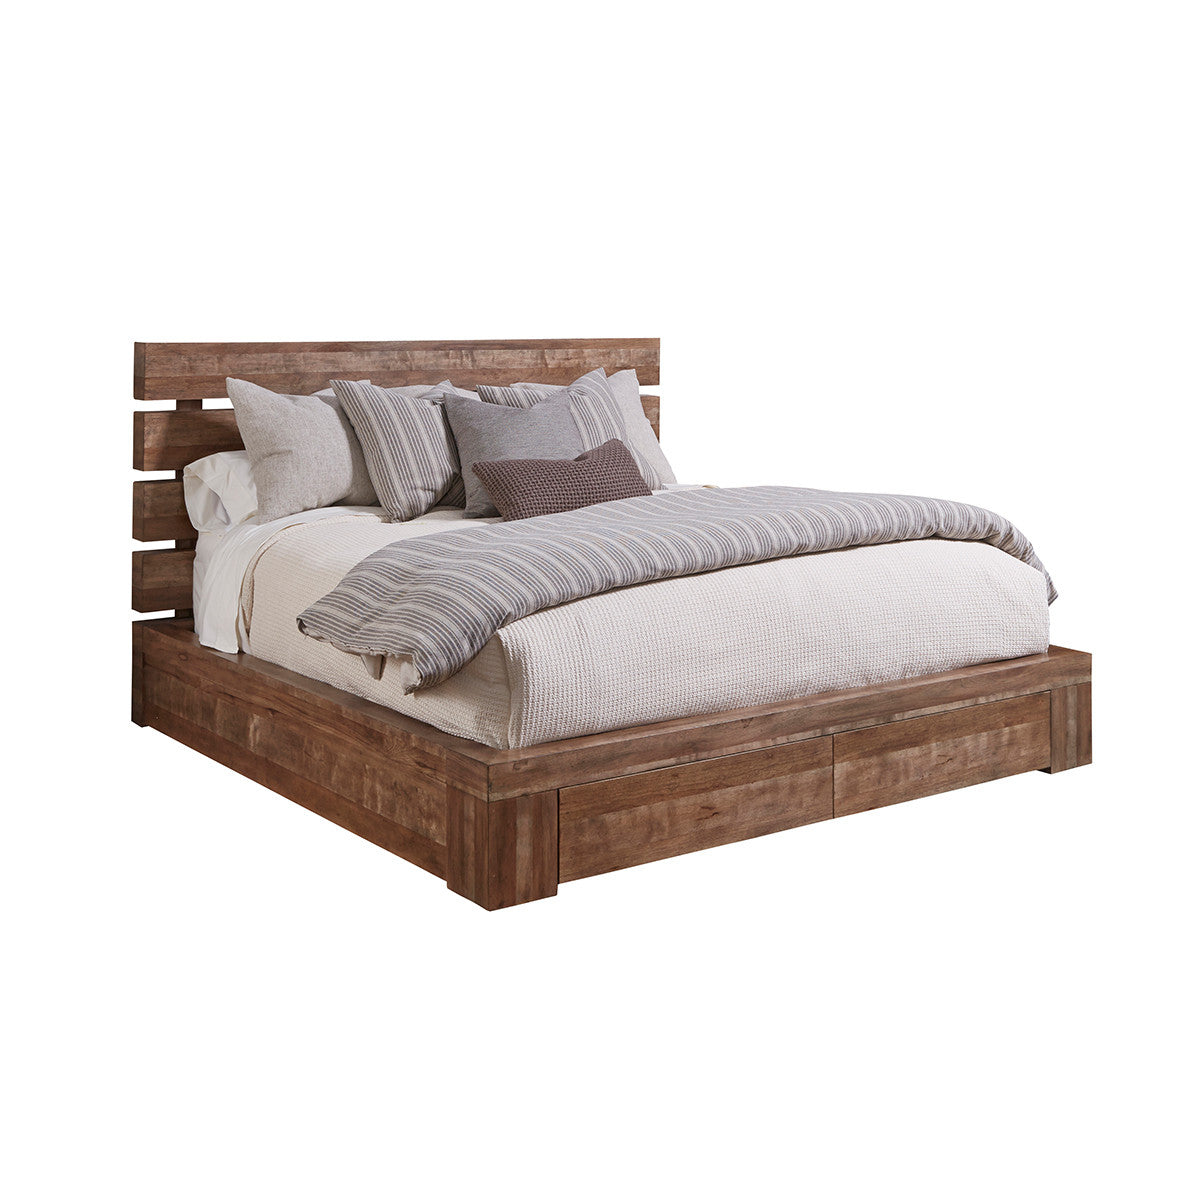 Providence timber queen bed. Providence Timber Queen Bed   Max Sparrow